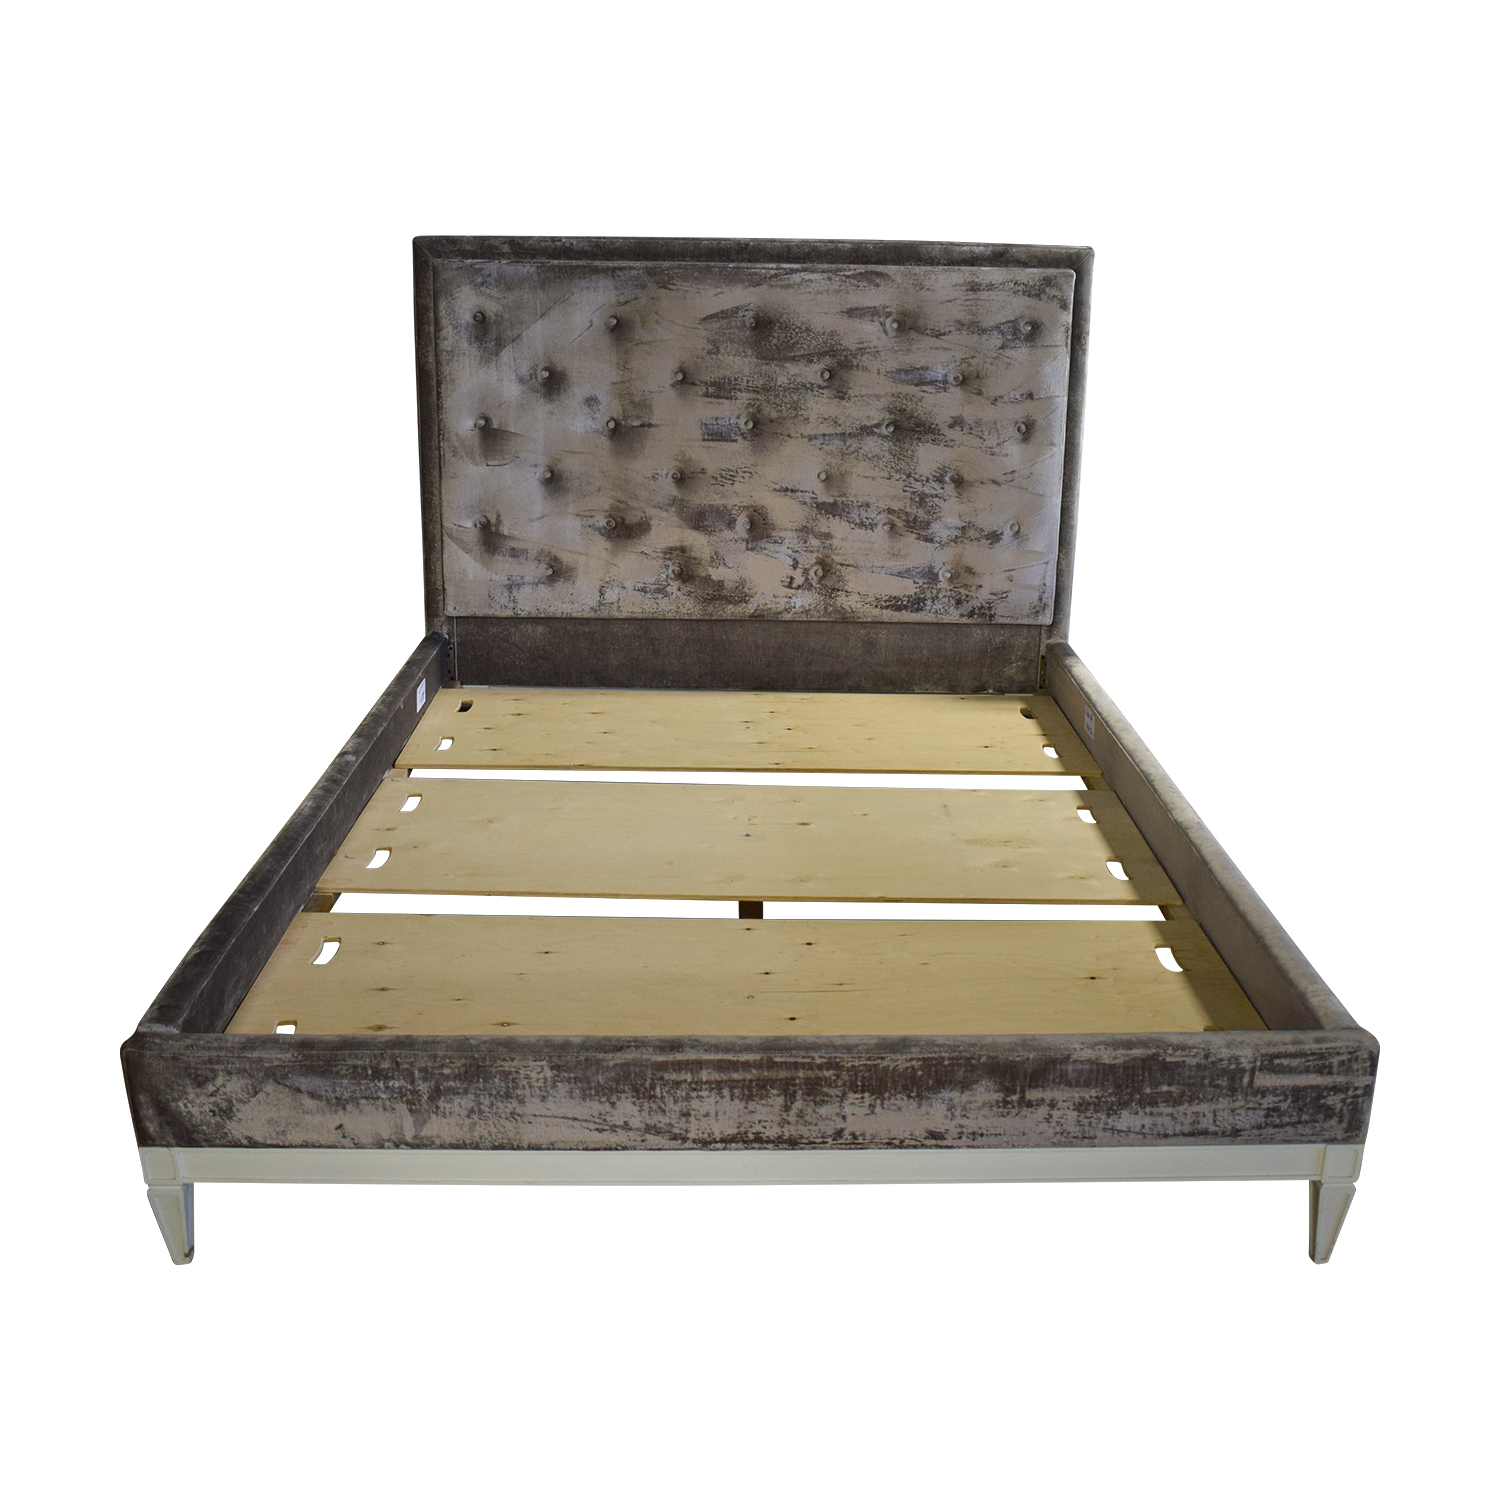 Jonathan Adler Jonathan Adler Lampert Tufted Grey Velvet Queen Bed Frame